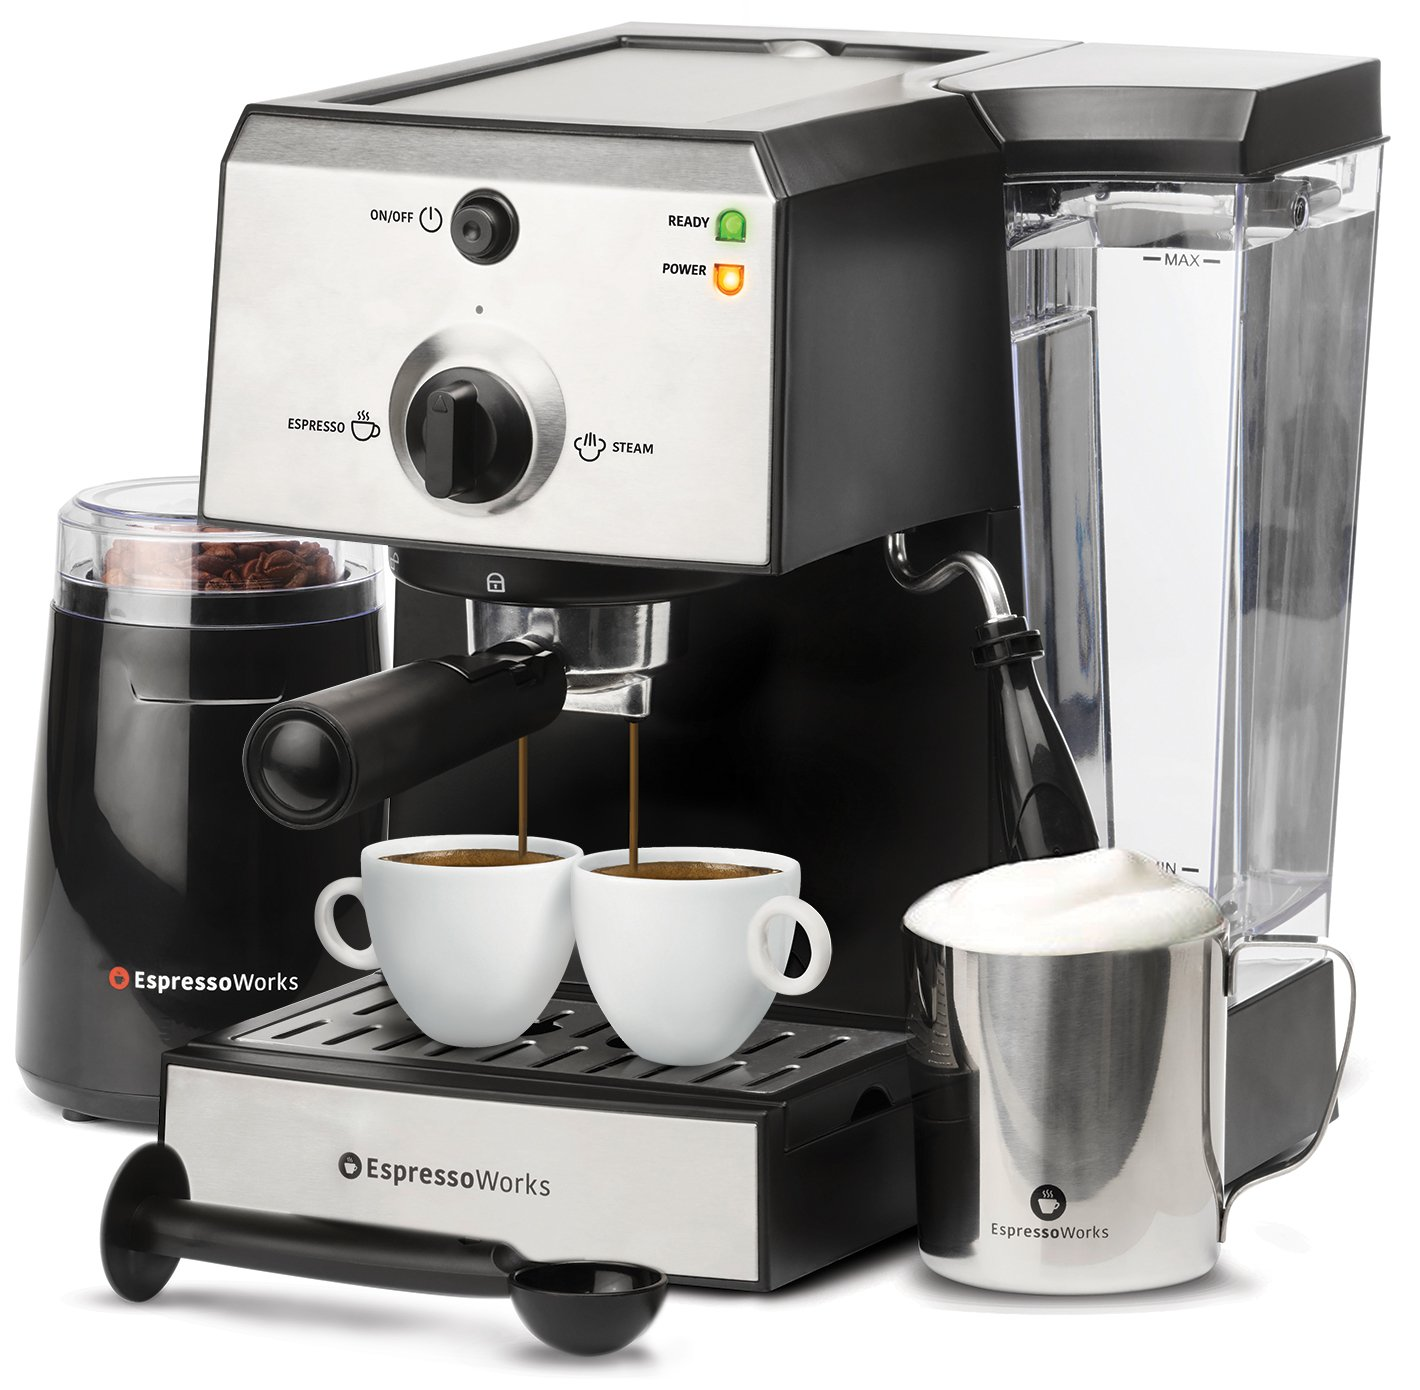 EspressoWorks 7 Pc All-In-One Espresso Machine Cappuccino Maker Barista Bundle Set w Built-In Steamer Frother Inc Coffee Bean Grinder, Milk Frothing Cup, Spoon Tamper 2 Cups , Stainless Steel